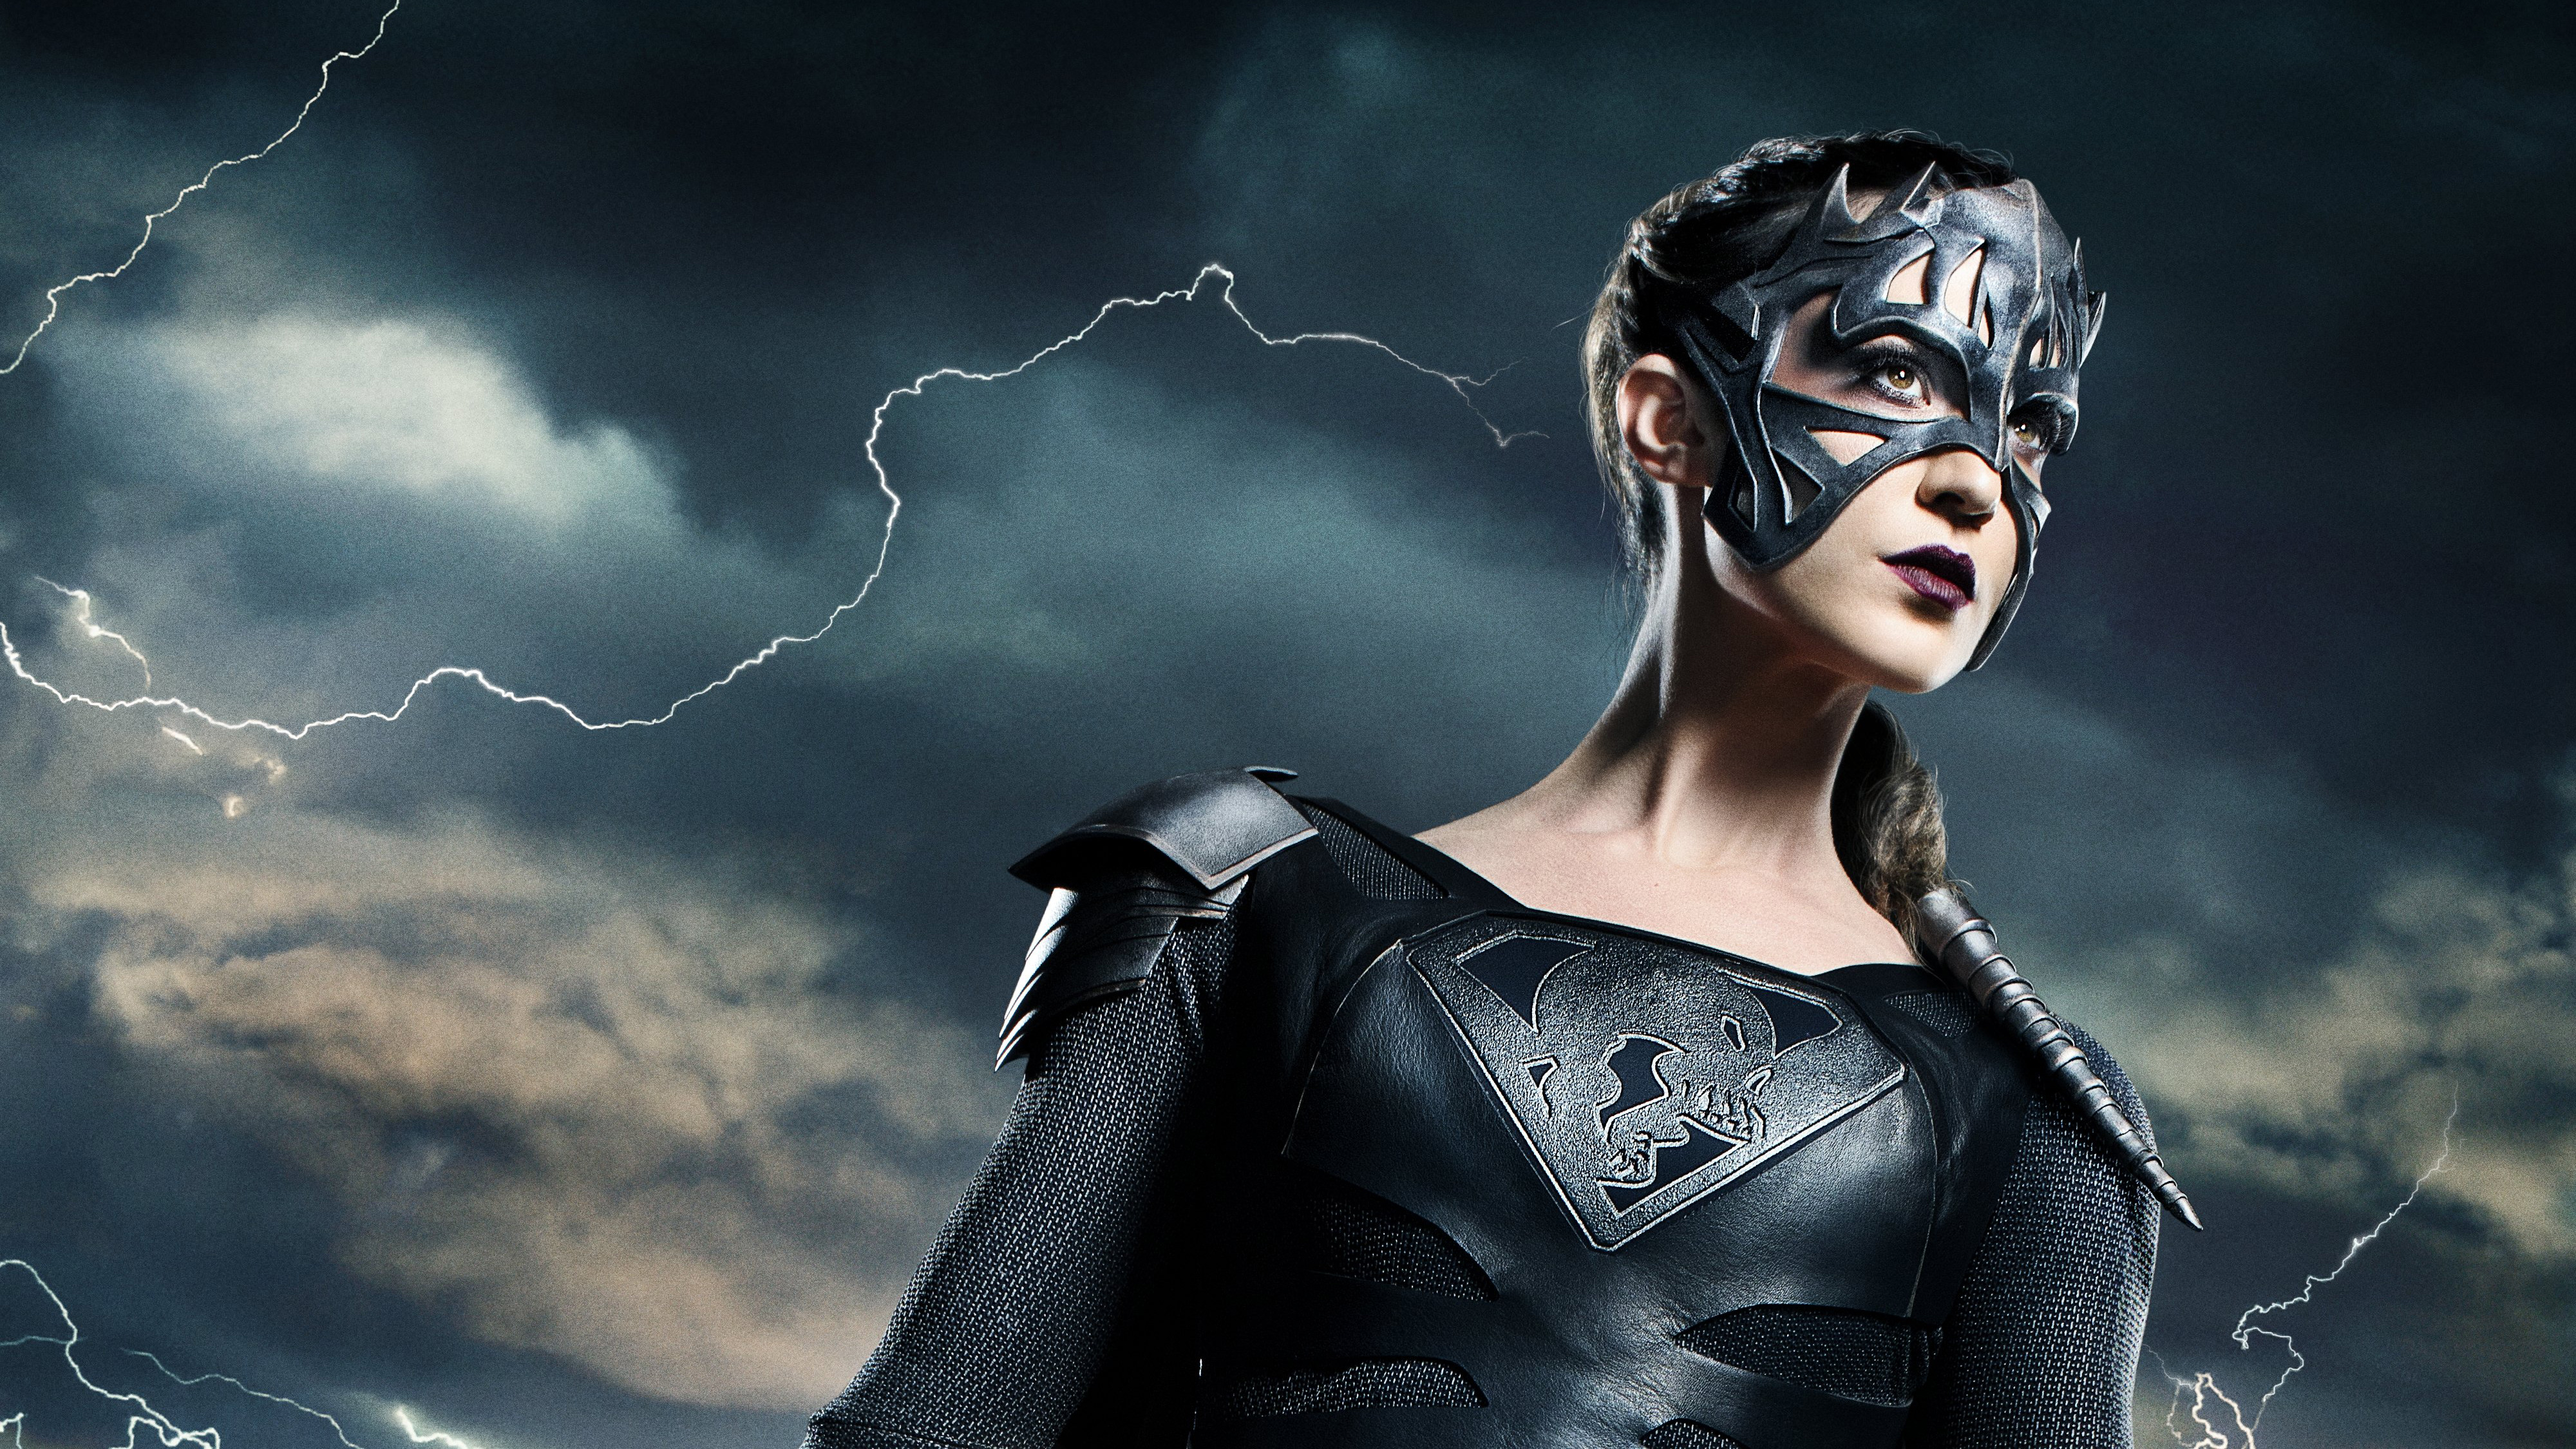 Reign from supergirl 4k hd tv shows 4k wallpapers - Tv series wallpaper 4k ...